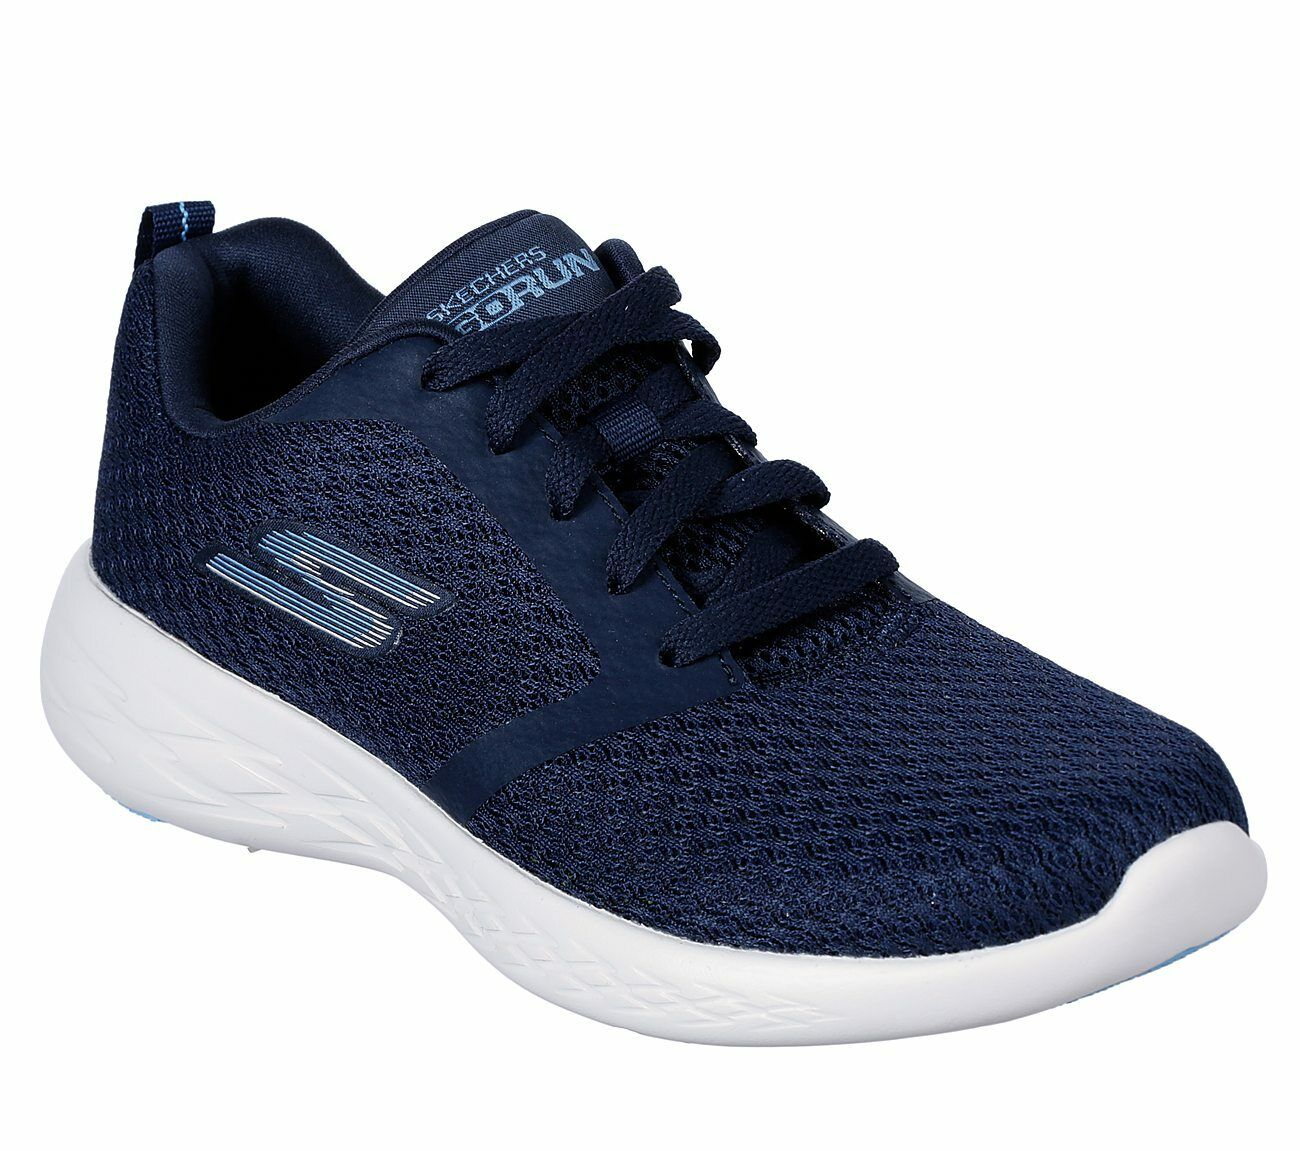 Skechers Navy White shoes Women's Sport Go Run 600 Athletic Comfort Casual 15098